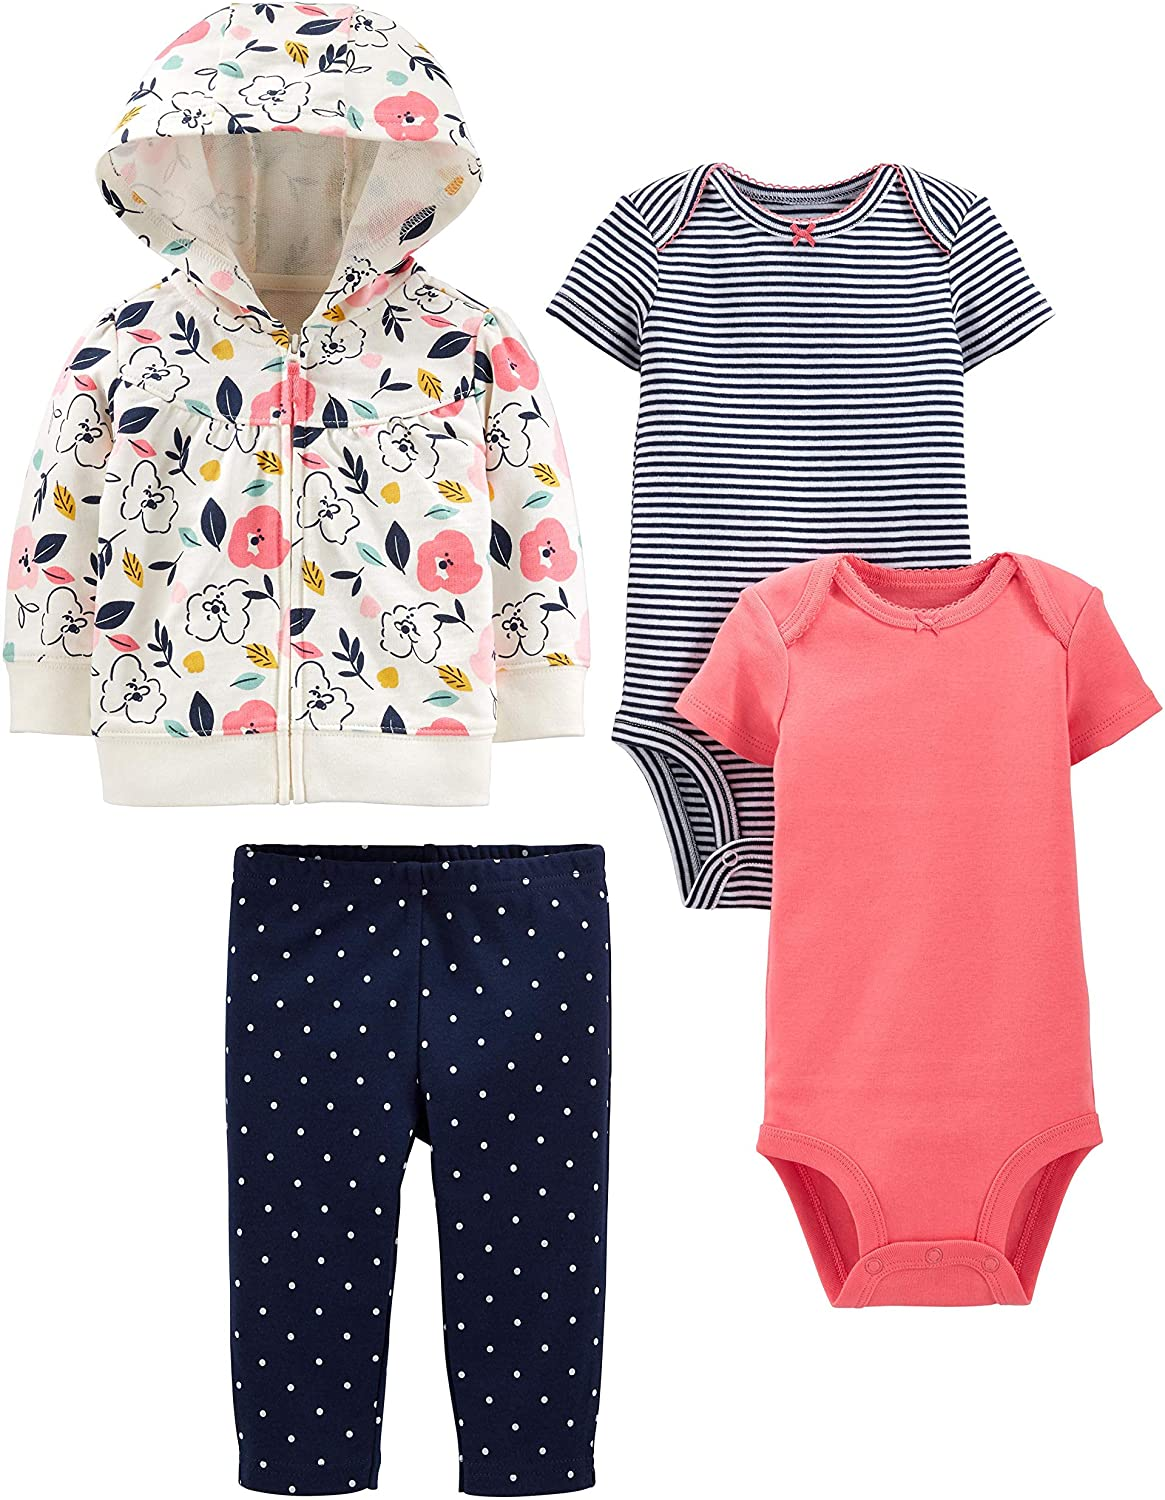 Simple Joys by Carter's Baby 4-Piece Jacket, Pant, and Bodysuit Set, Floral, 6-9 Months